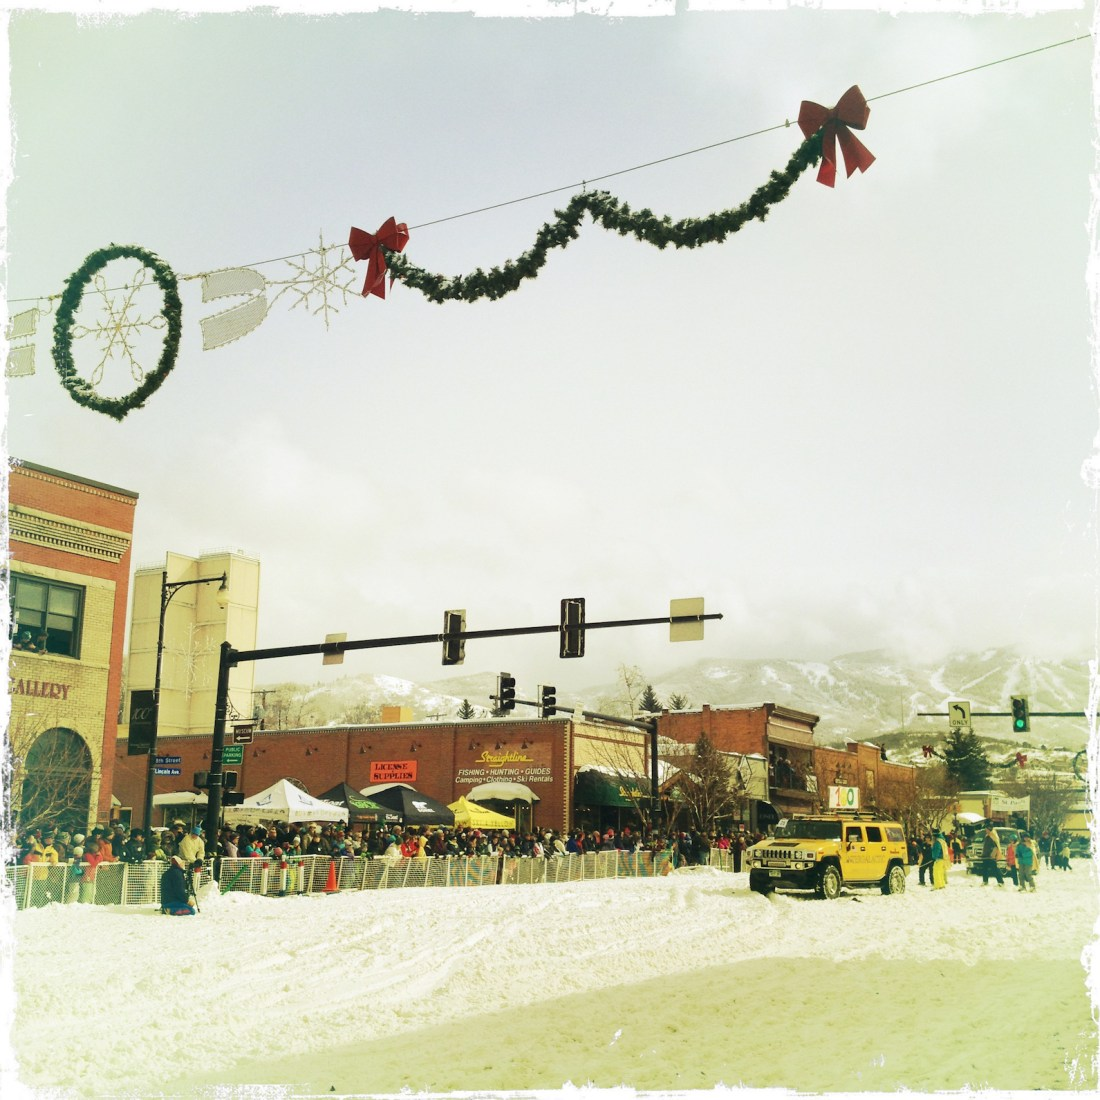 Steamboat Springs Winter Carnival Cures Cabin Fever